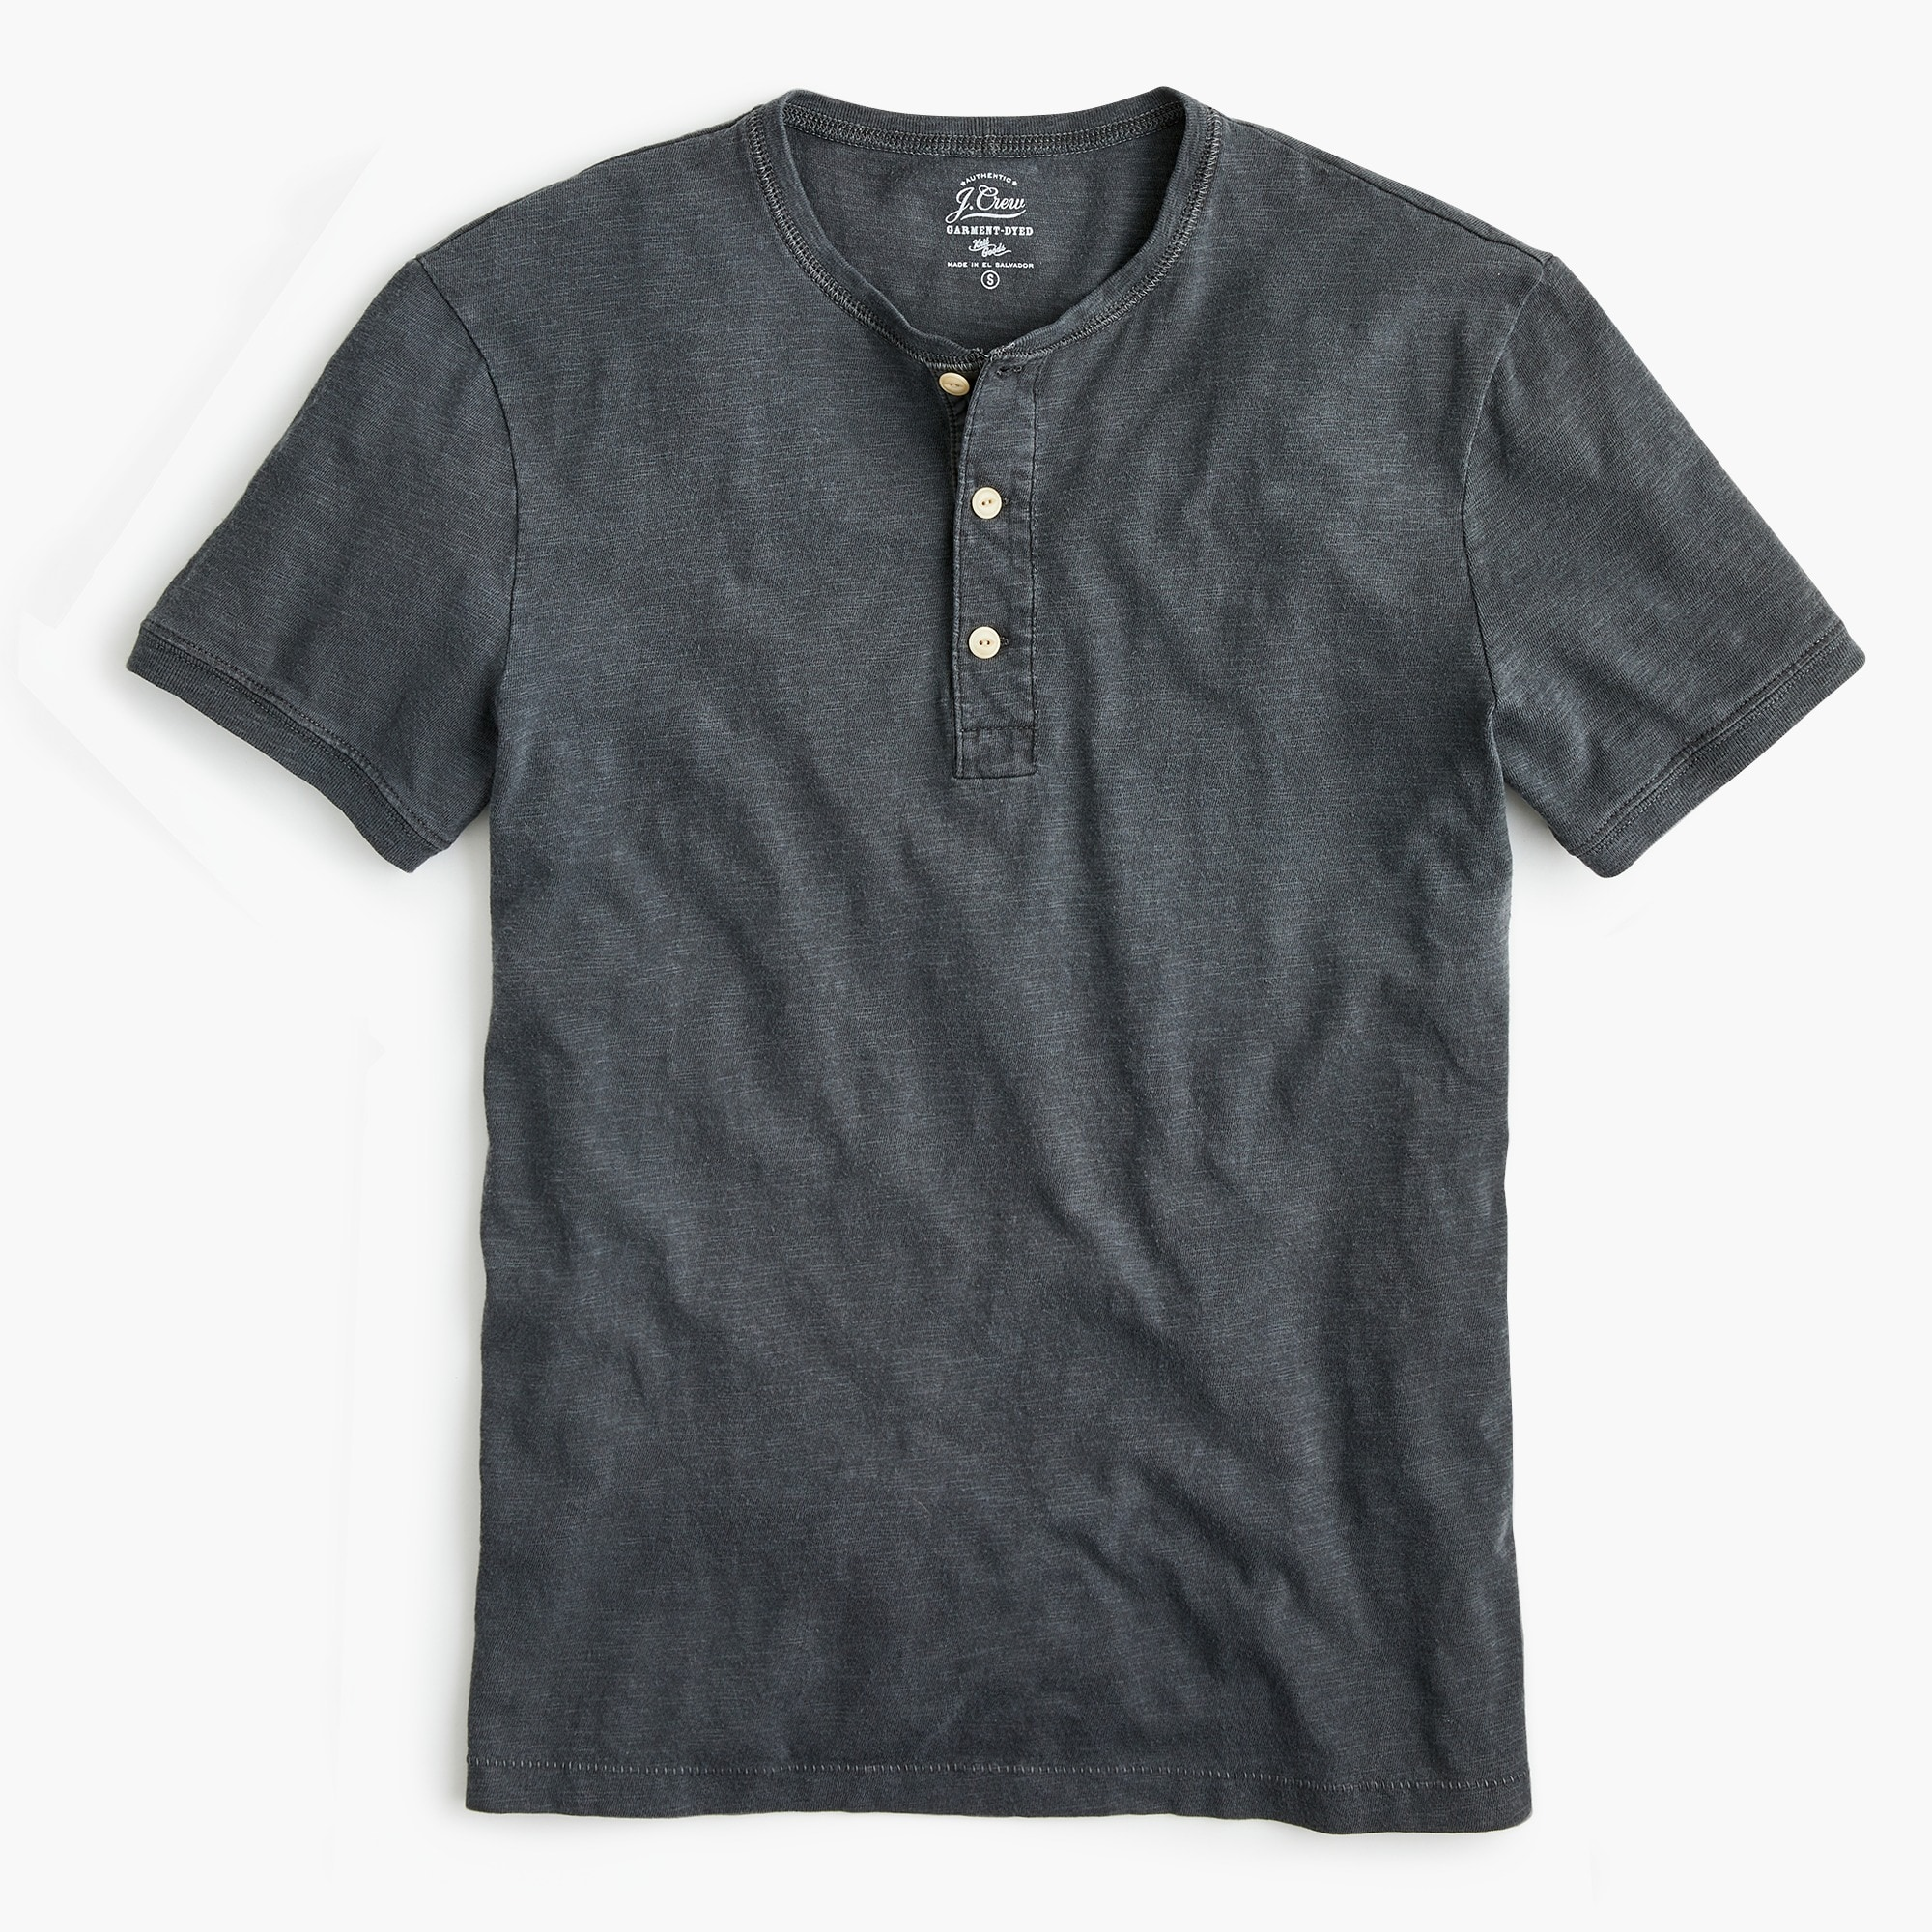 mens Tall garment-dyed slub cotton short-sleeve henley